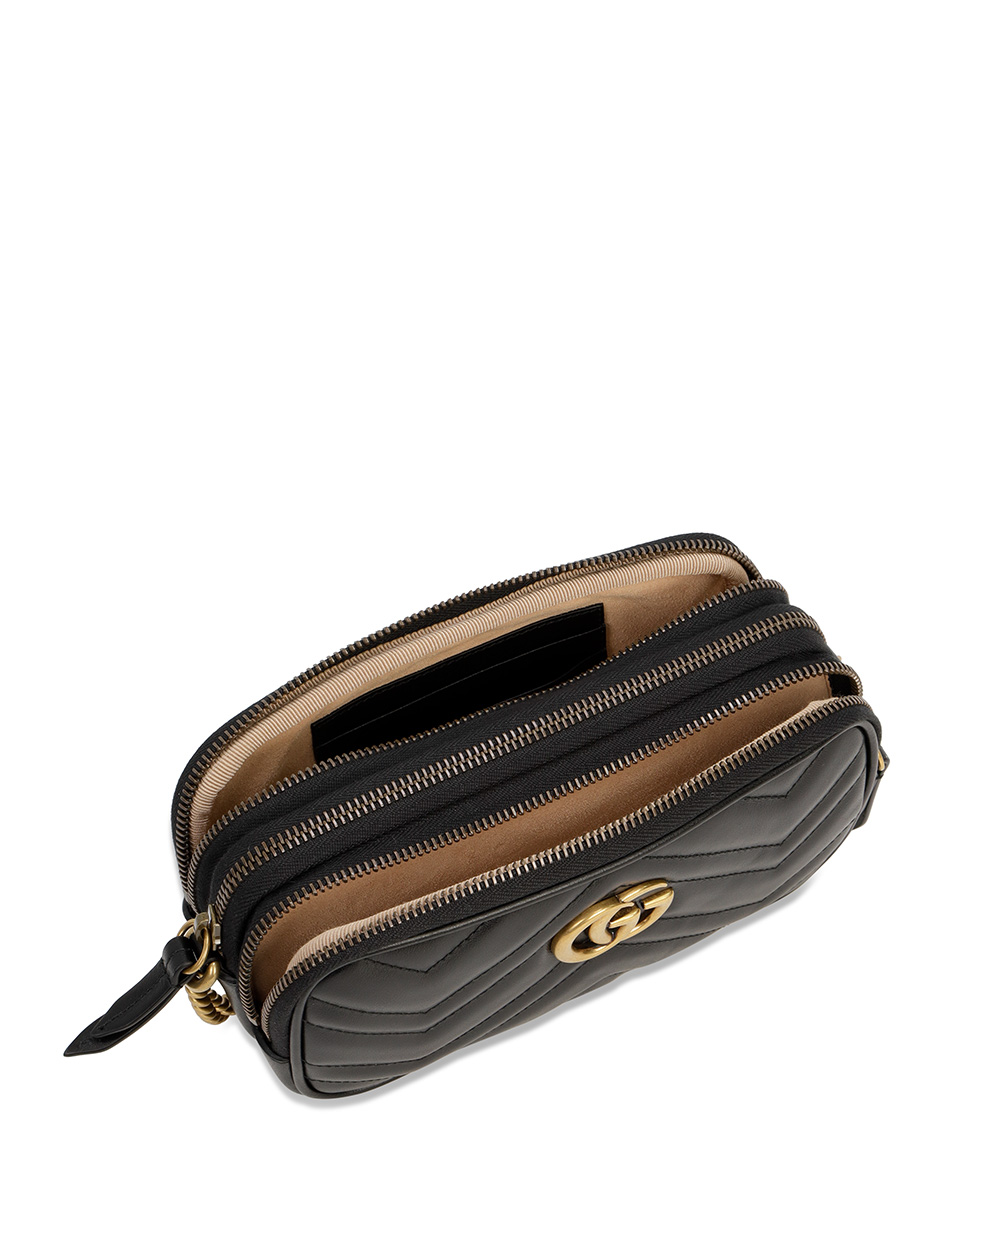 GG Marmont Mini Chain Bag 2